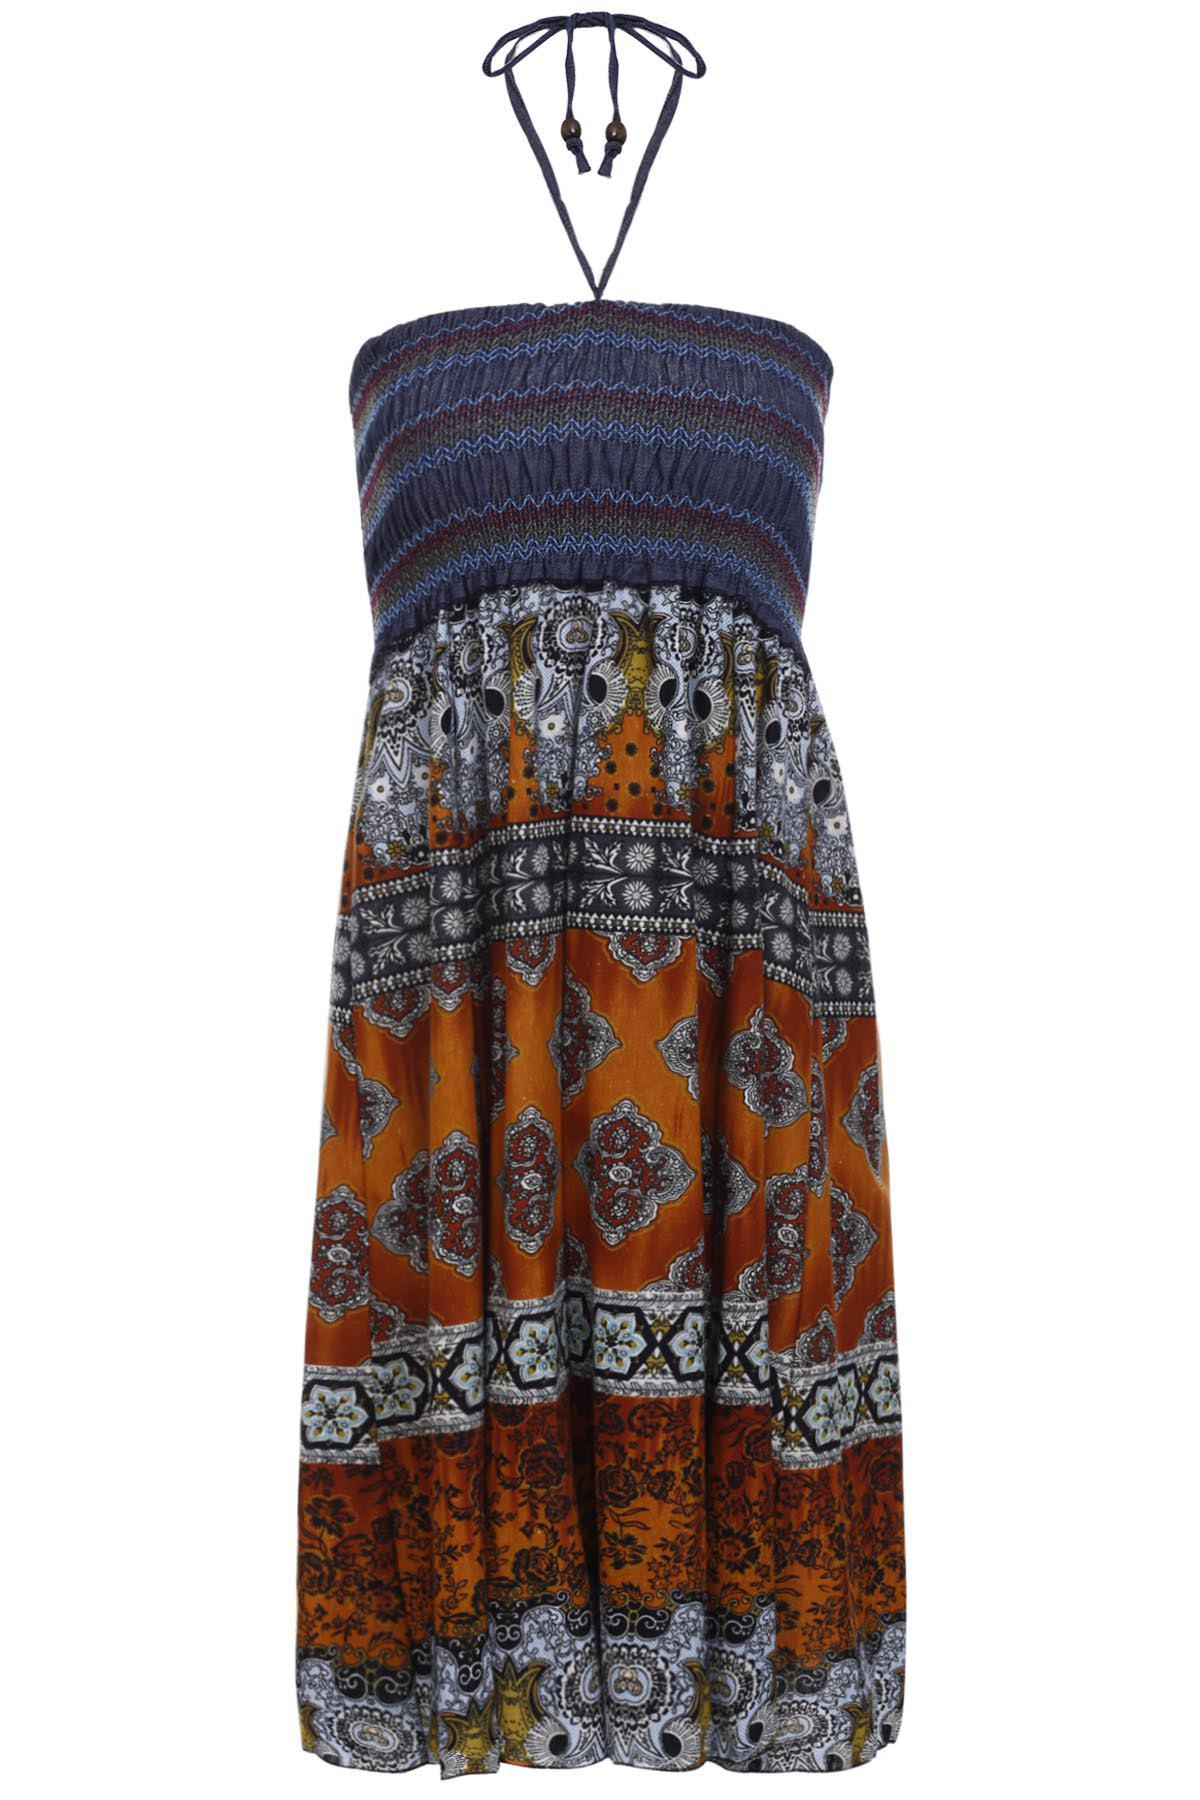 Bohemian Women's Printed Strapless Dress - ORANGE ONE SIZE(FIT SIZE XS TO M)